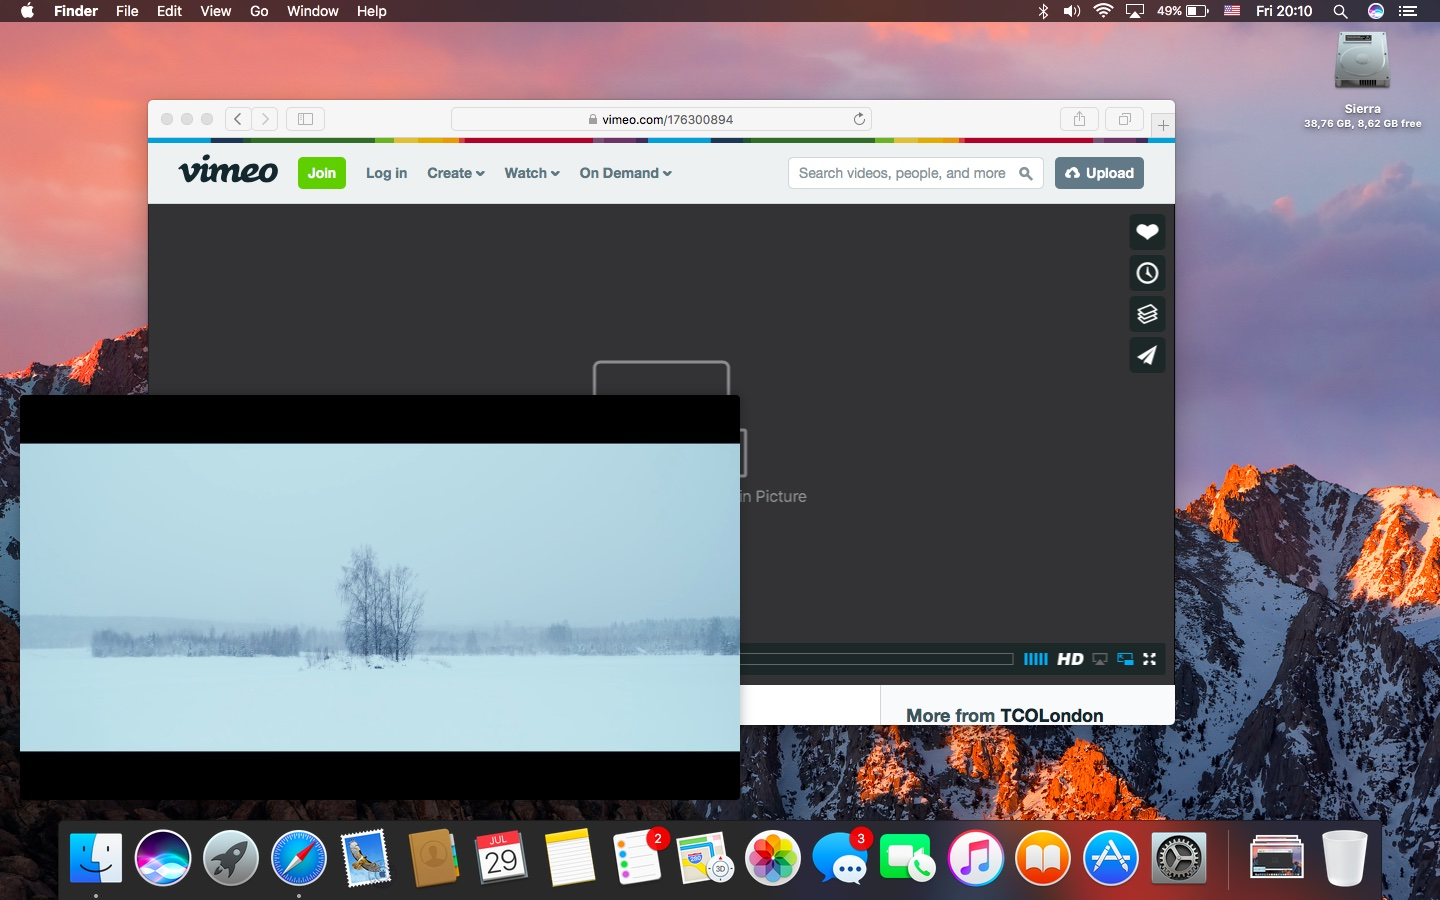 macOS Sierra Picture in Picture Vimeo Mac screenshot 006